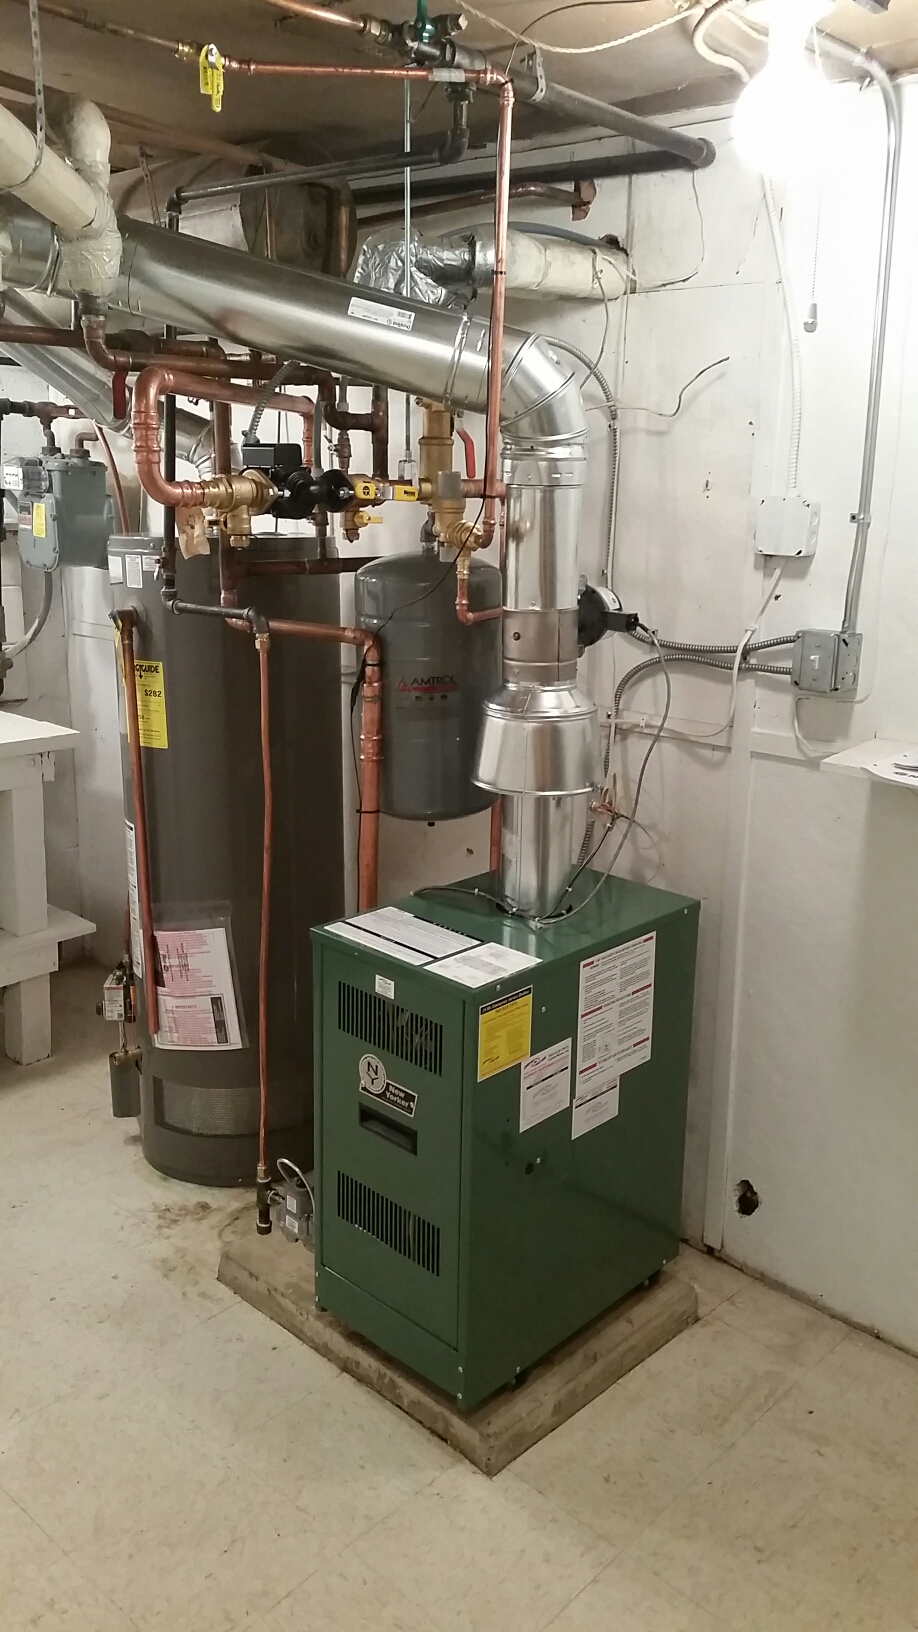 Saint Louis Park, MN - Hot water boiler inspection.